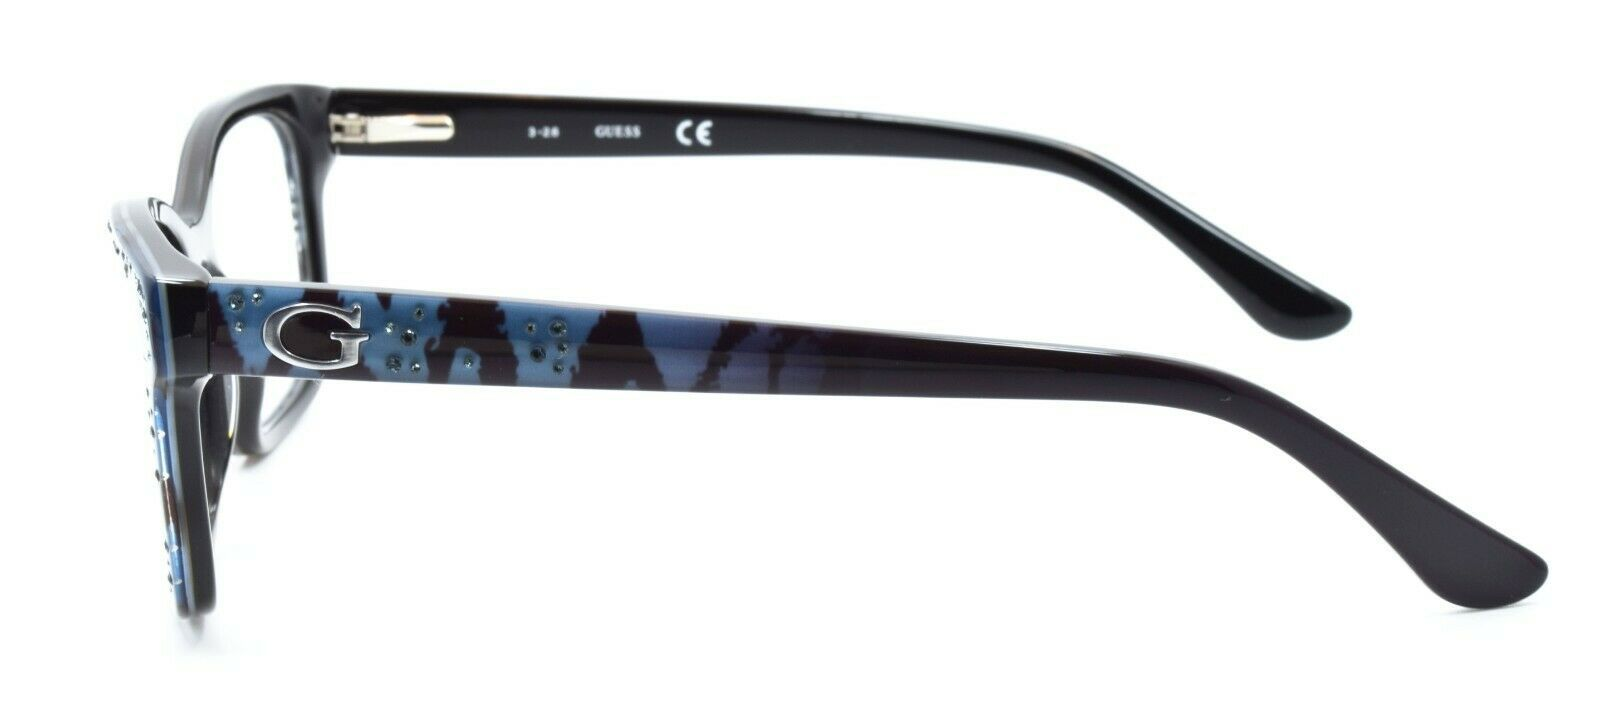 GUESS GU2553 005 Women's Eyeglasses Frames 53-16-135 Black w/ Sparkles + CASE